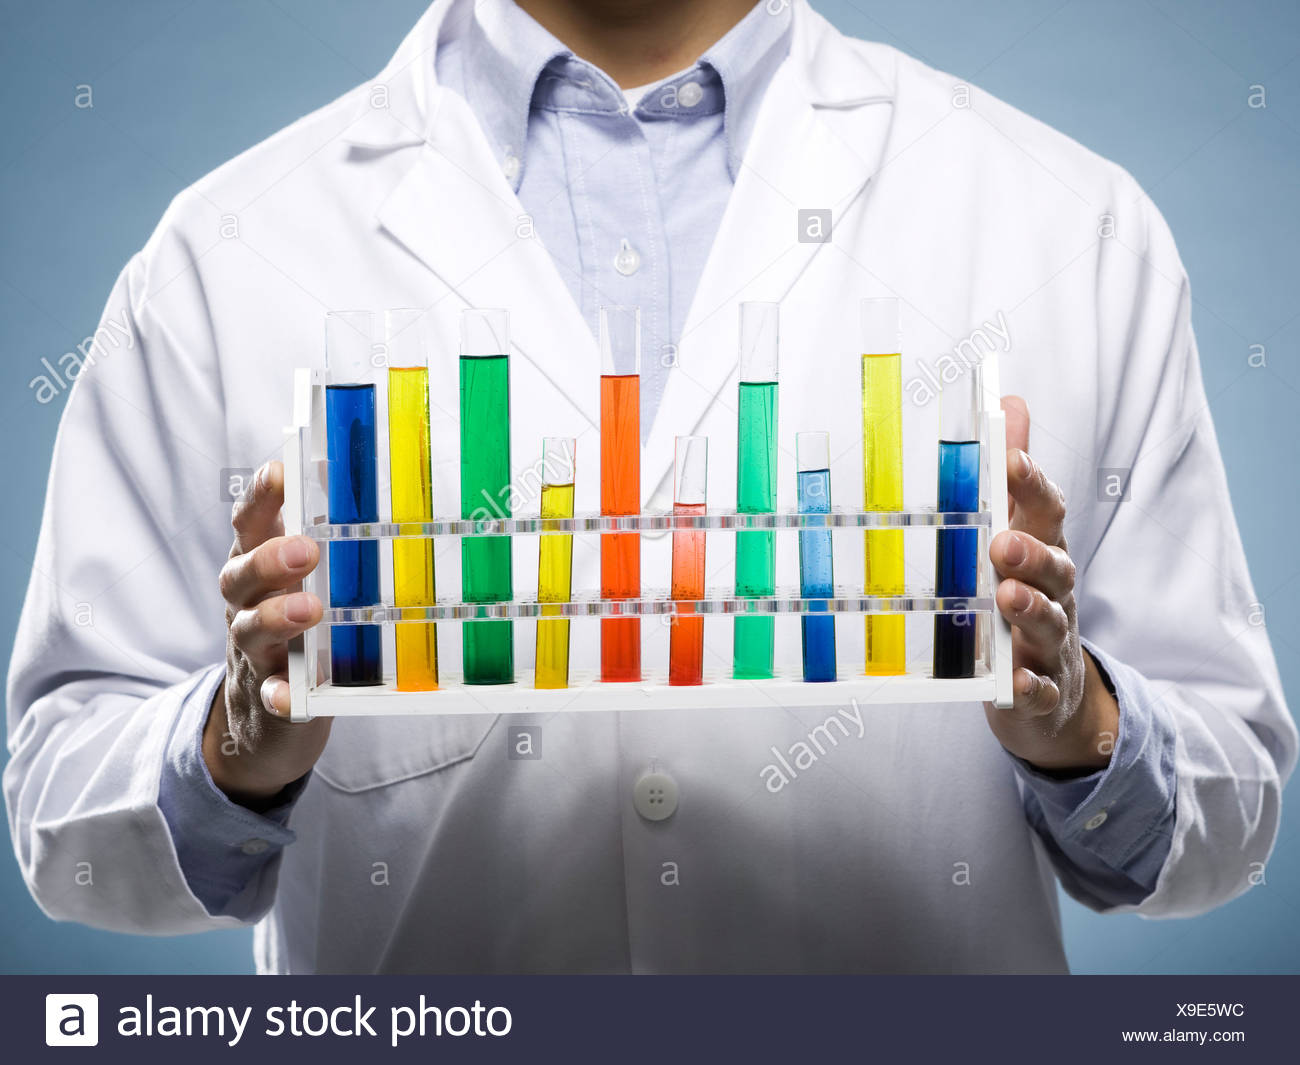 scientist holding test tubes - Stock Image